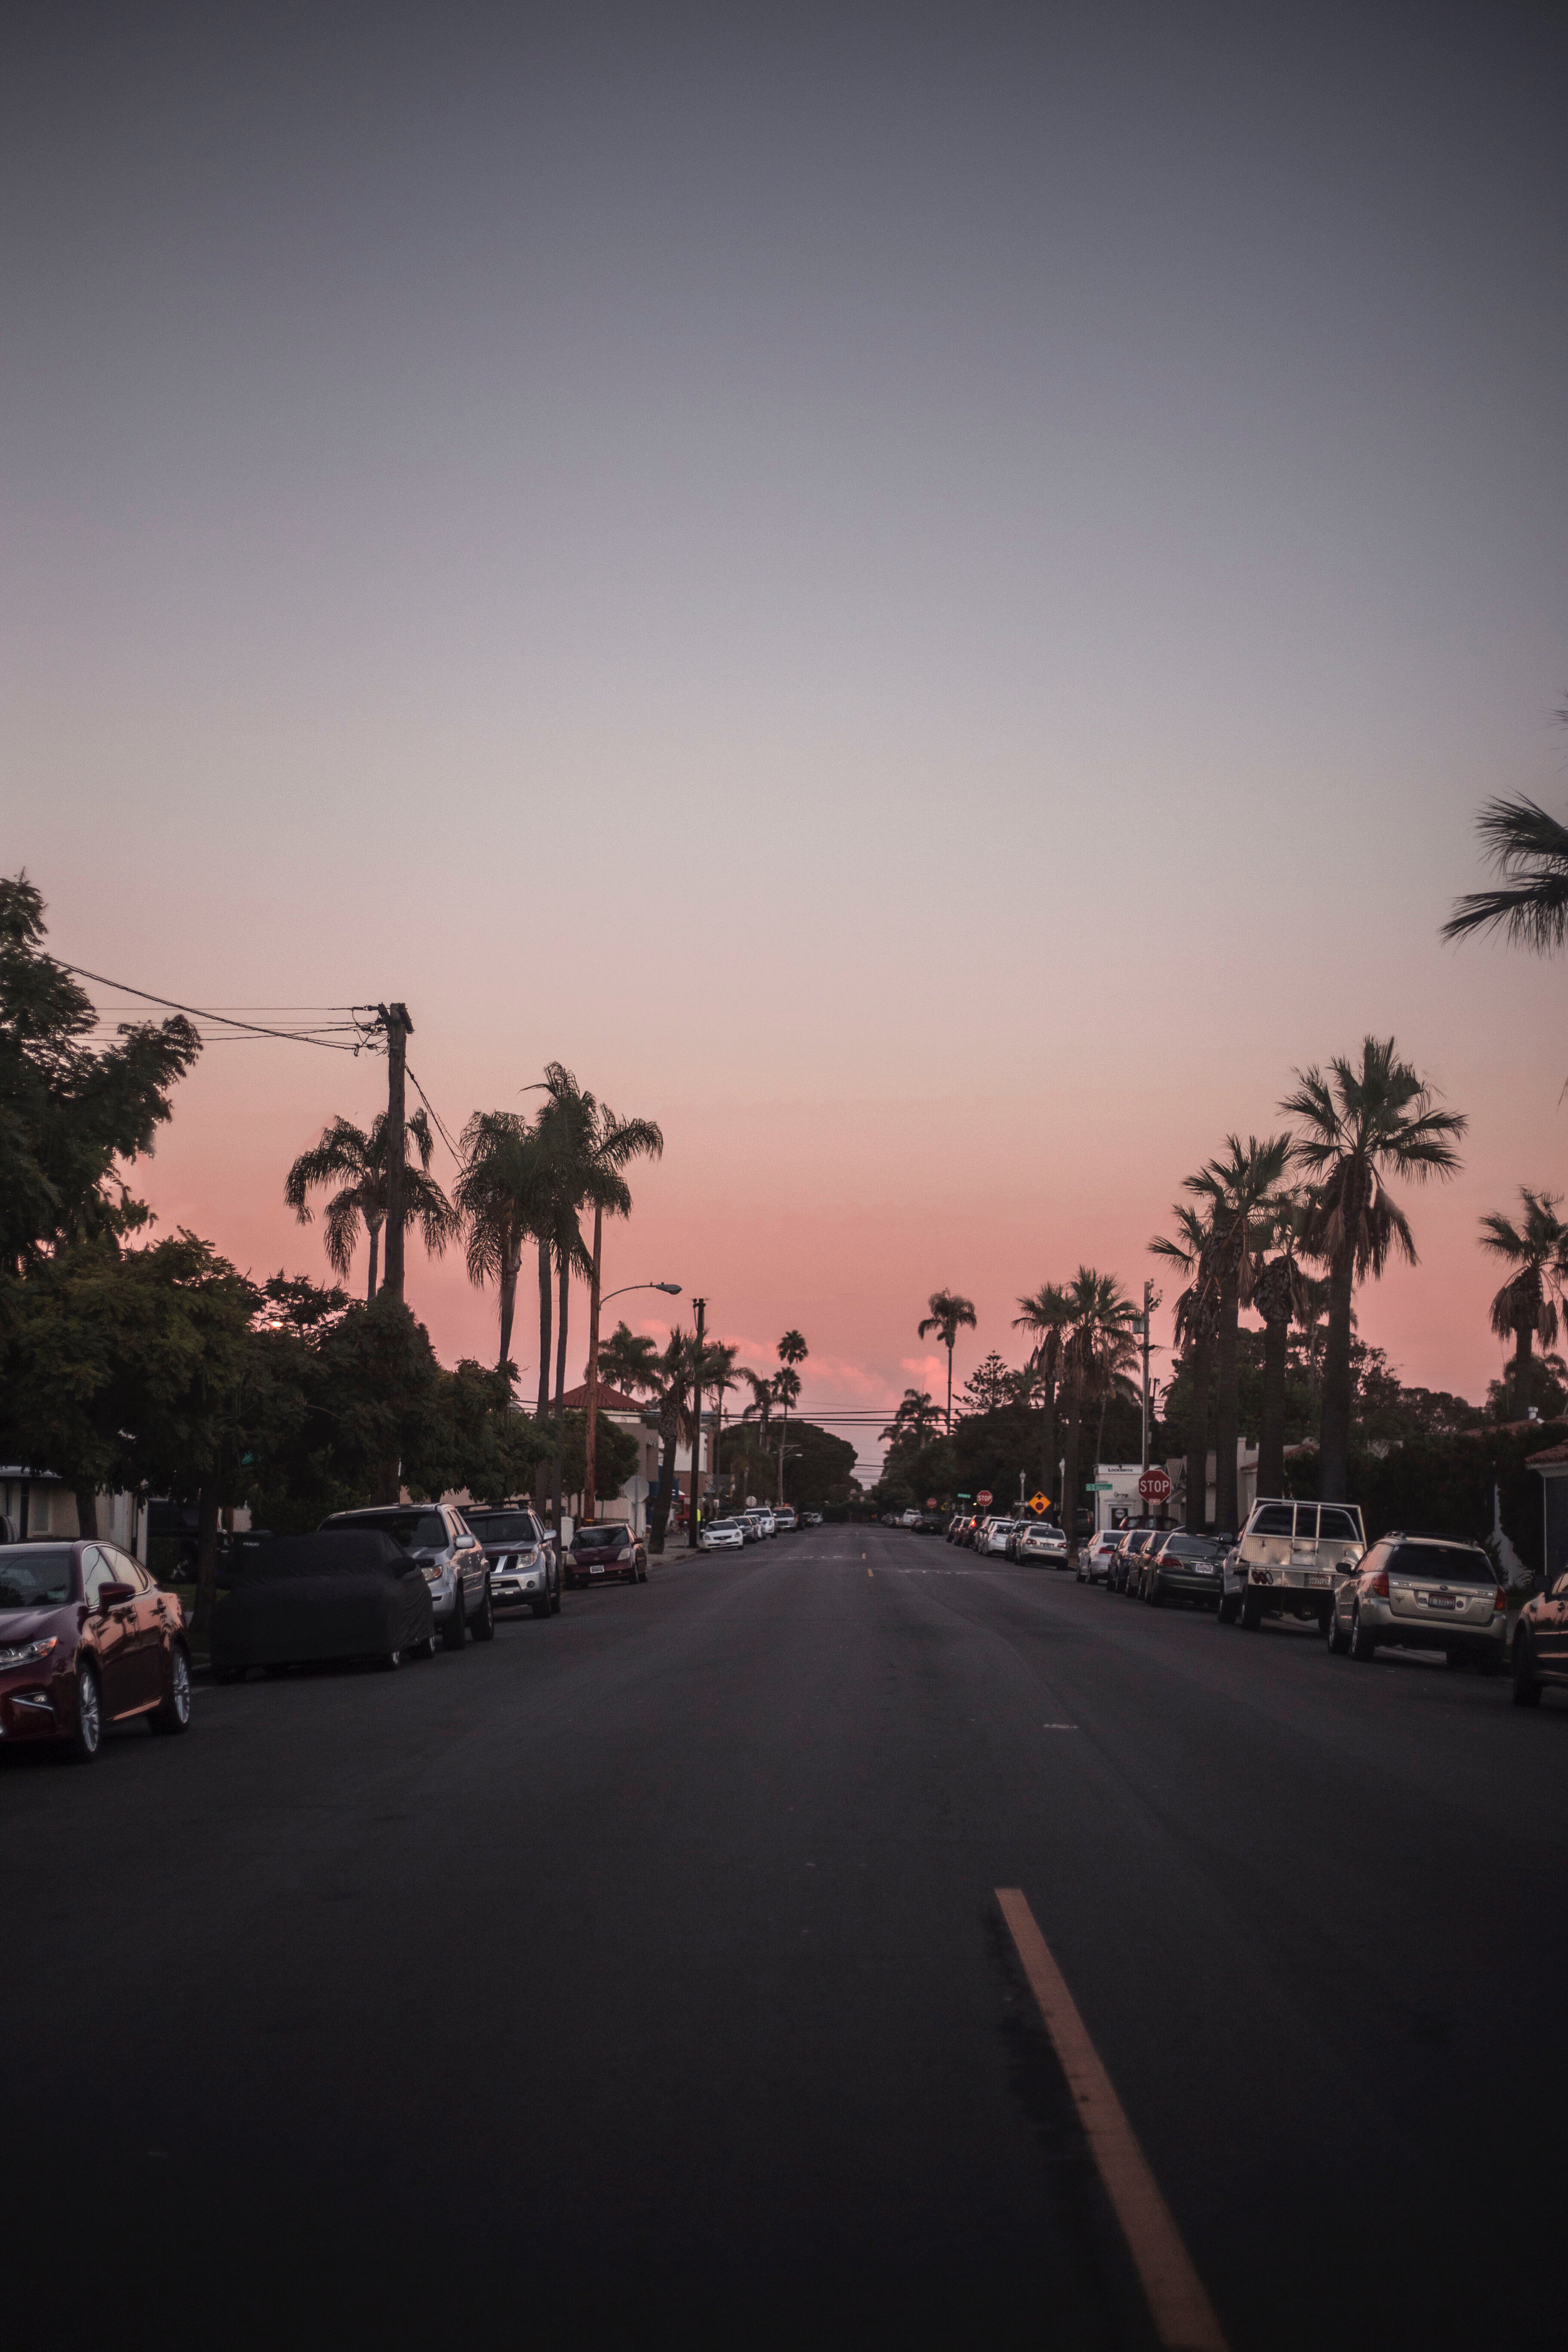 Sunset in Coronado (San Diego City Guide)